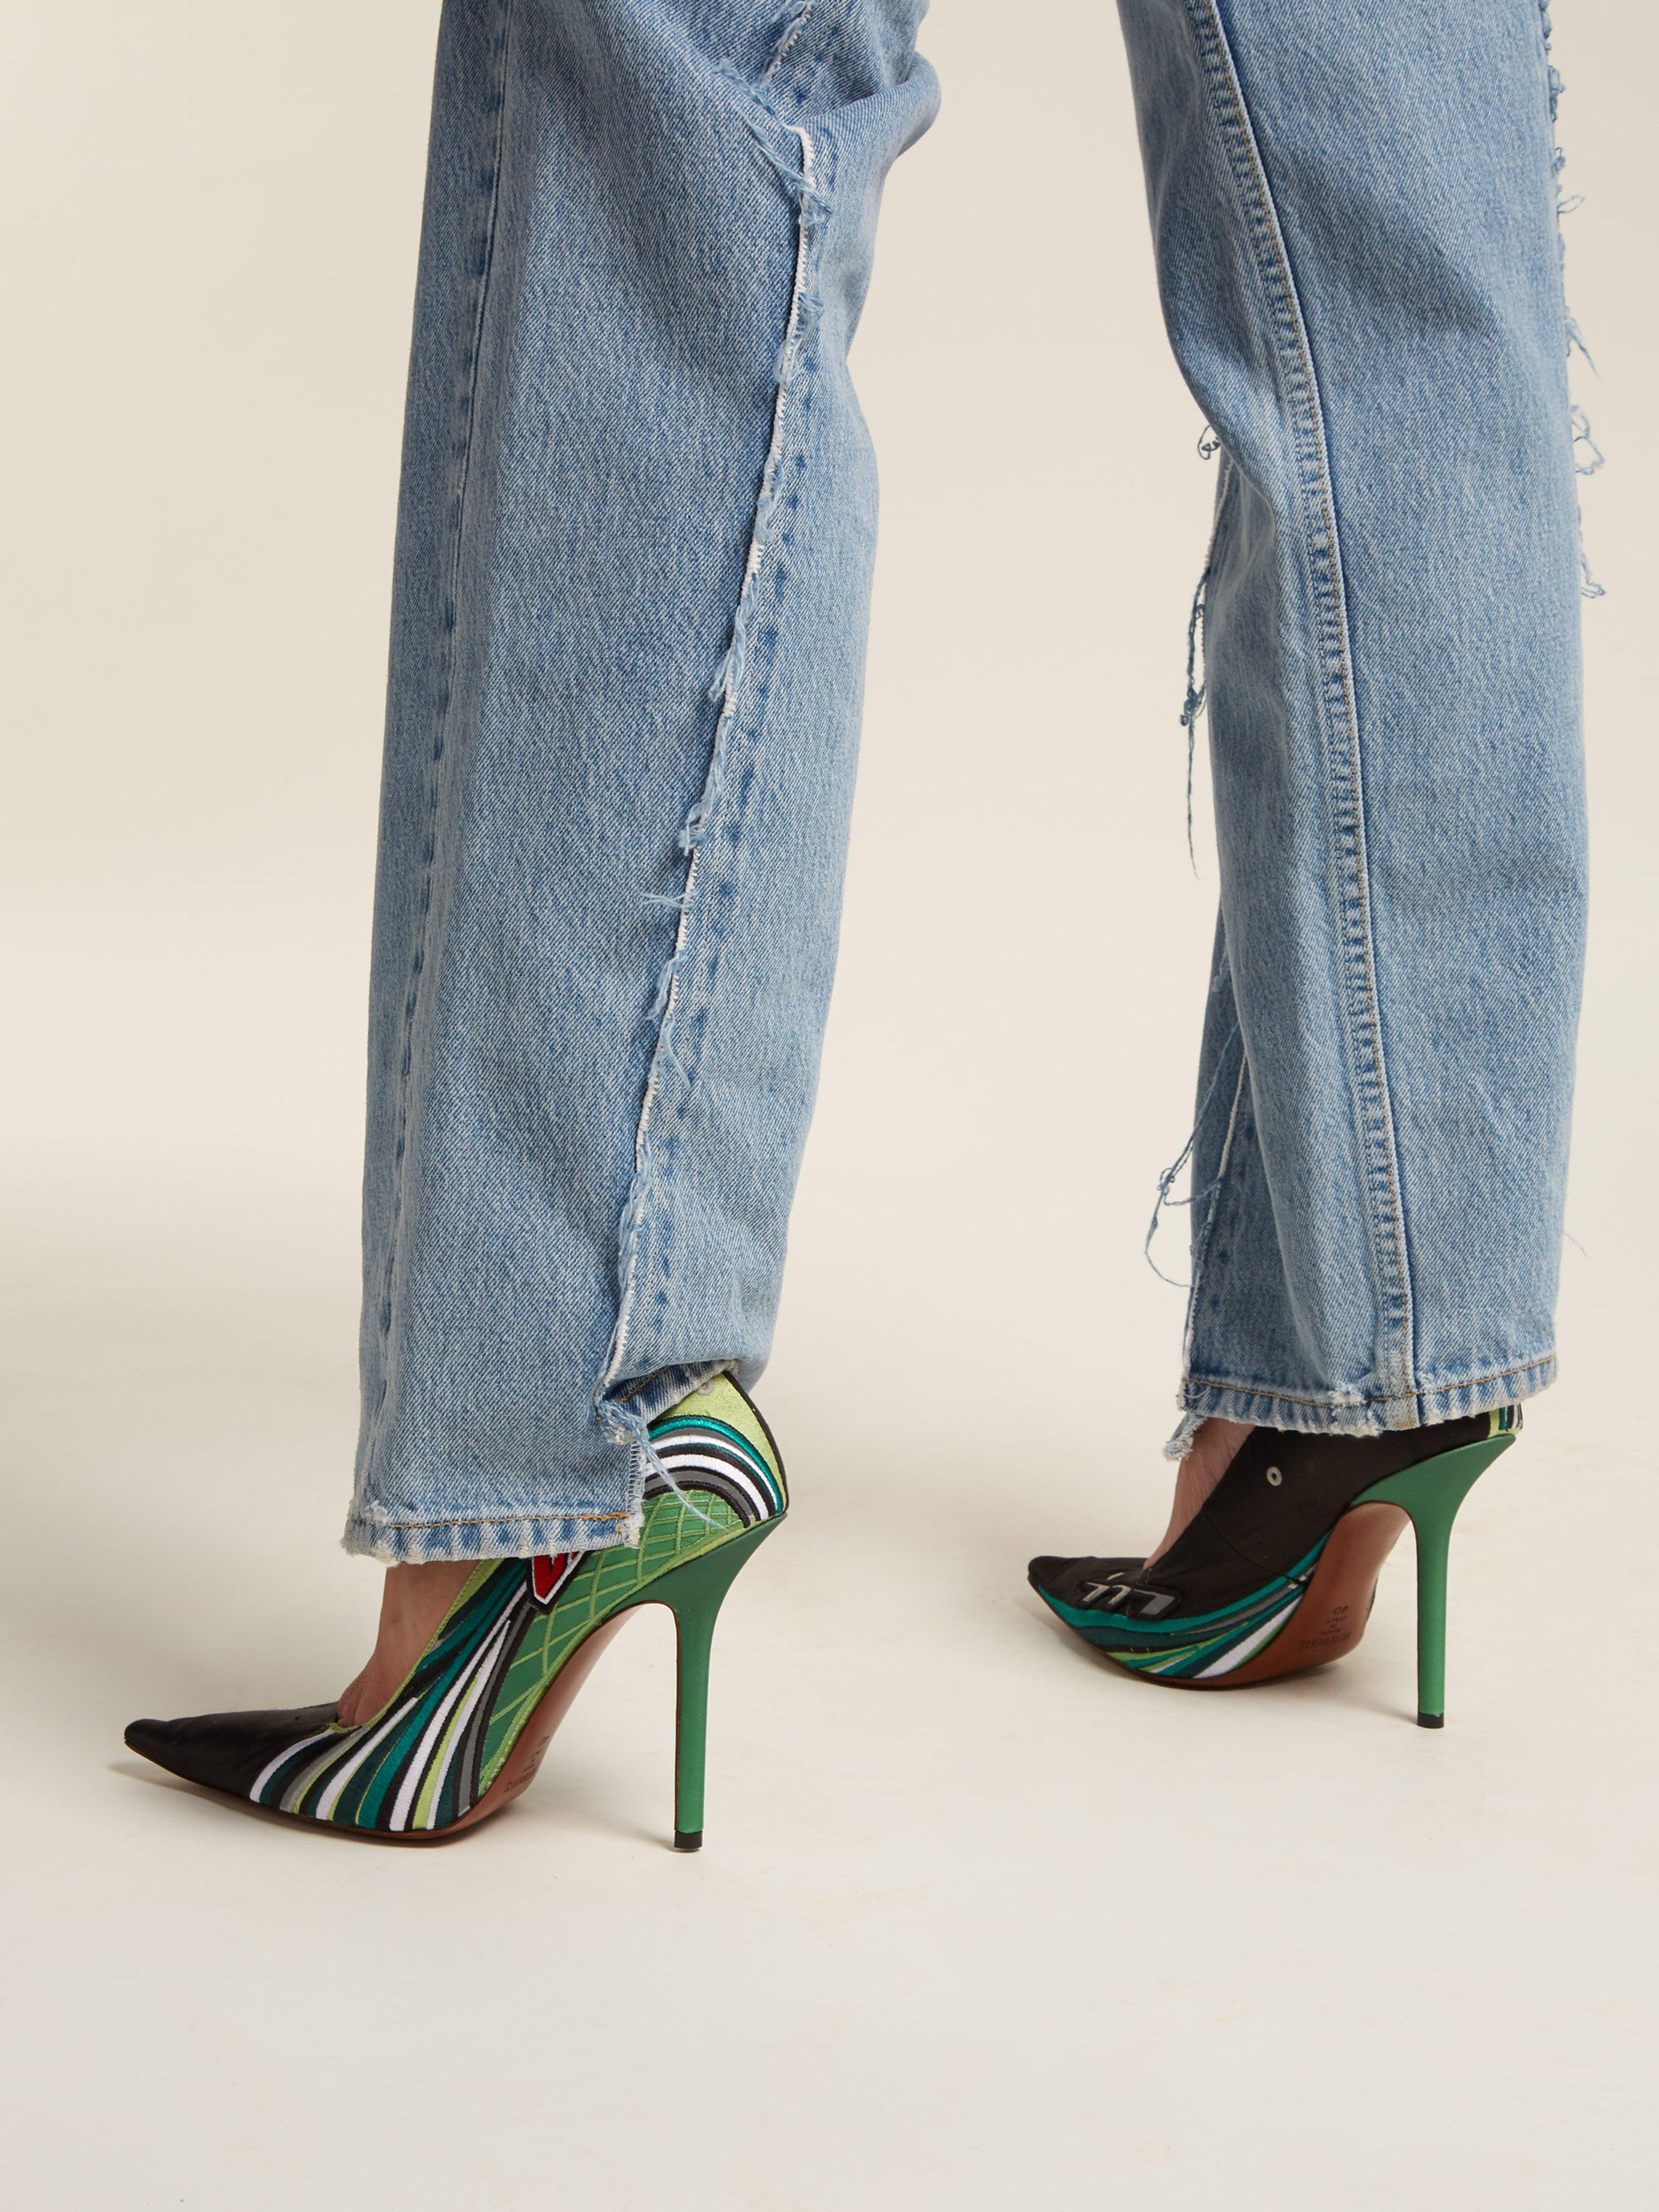 fc8d3a6bea3c Vetements - Green Racer Embroidered Point Toe Pumps - Lyst. View fullscreen